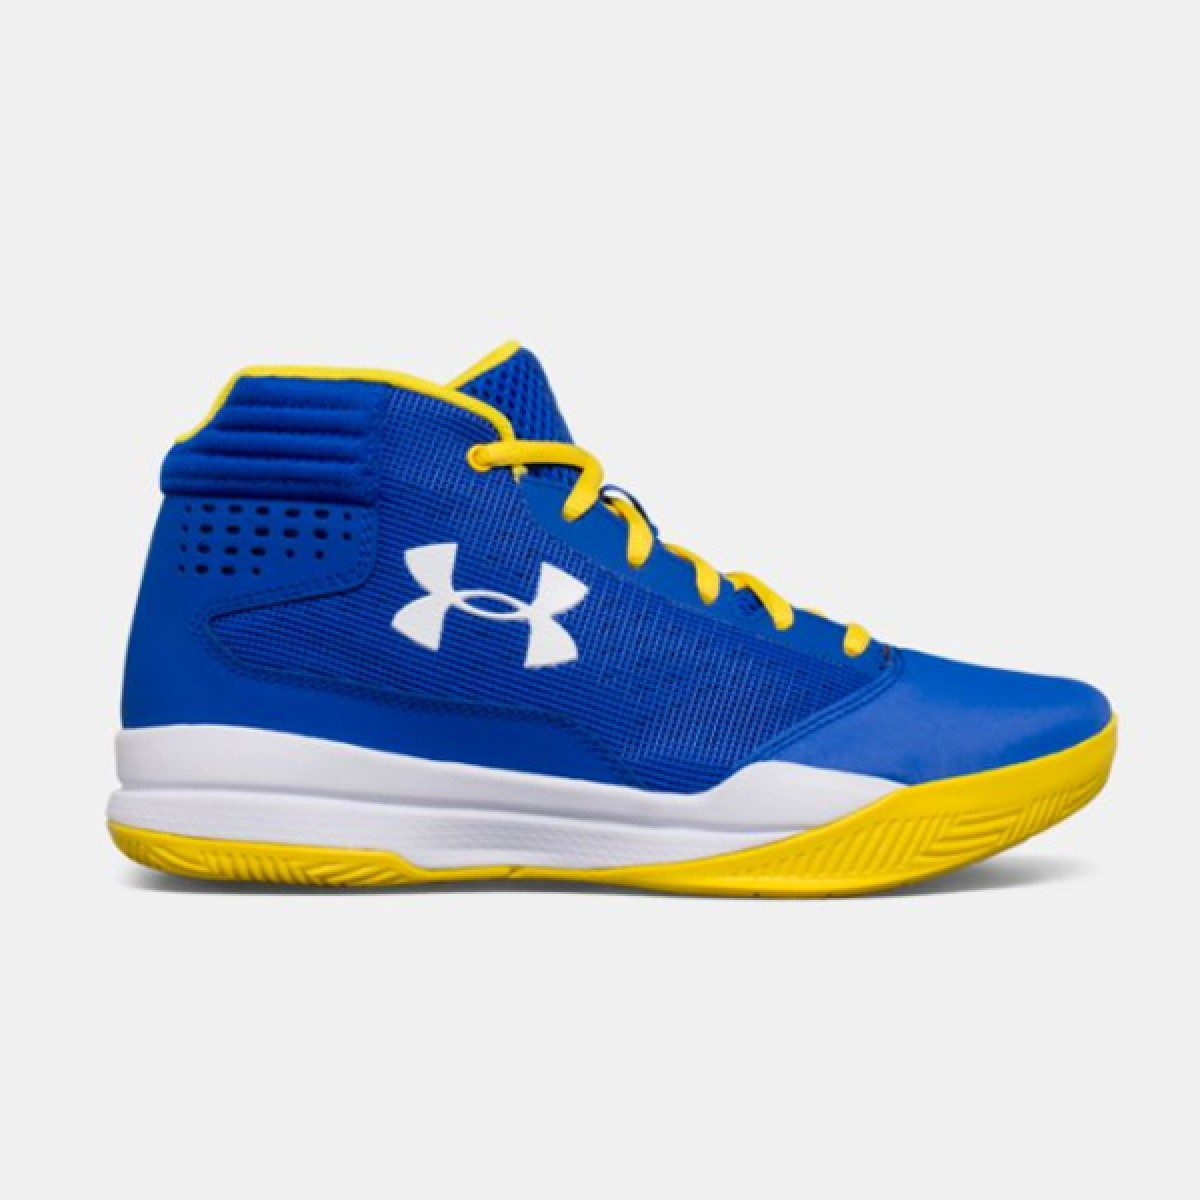 fb2f14da4524 Buy Under Armour Jet Mid  GSW  Basketball shoes   sneakers